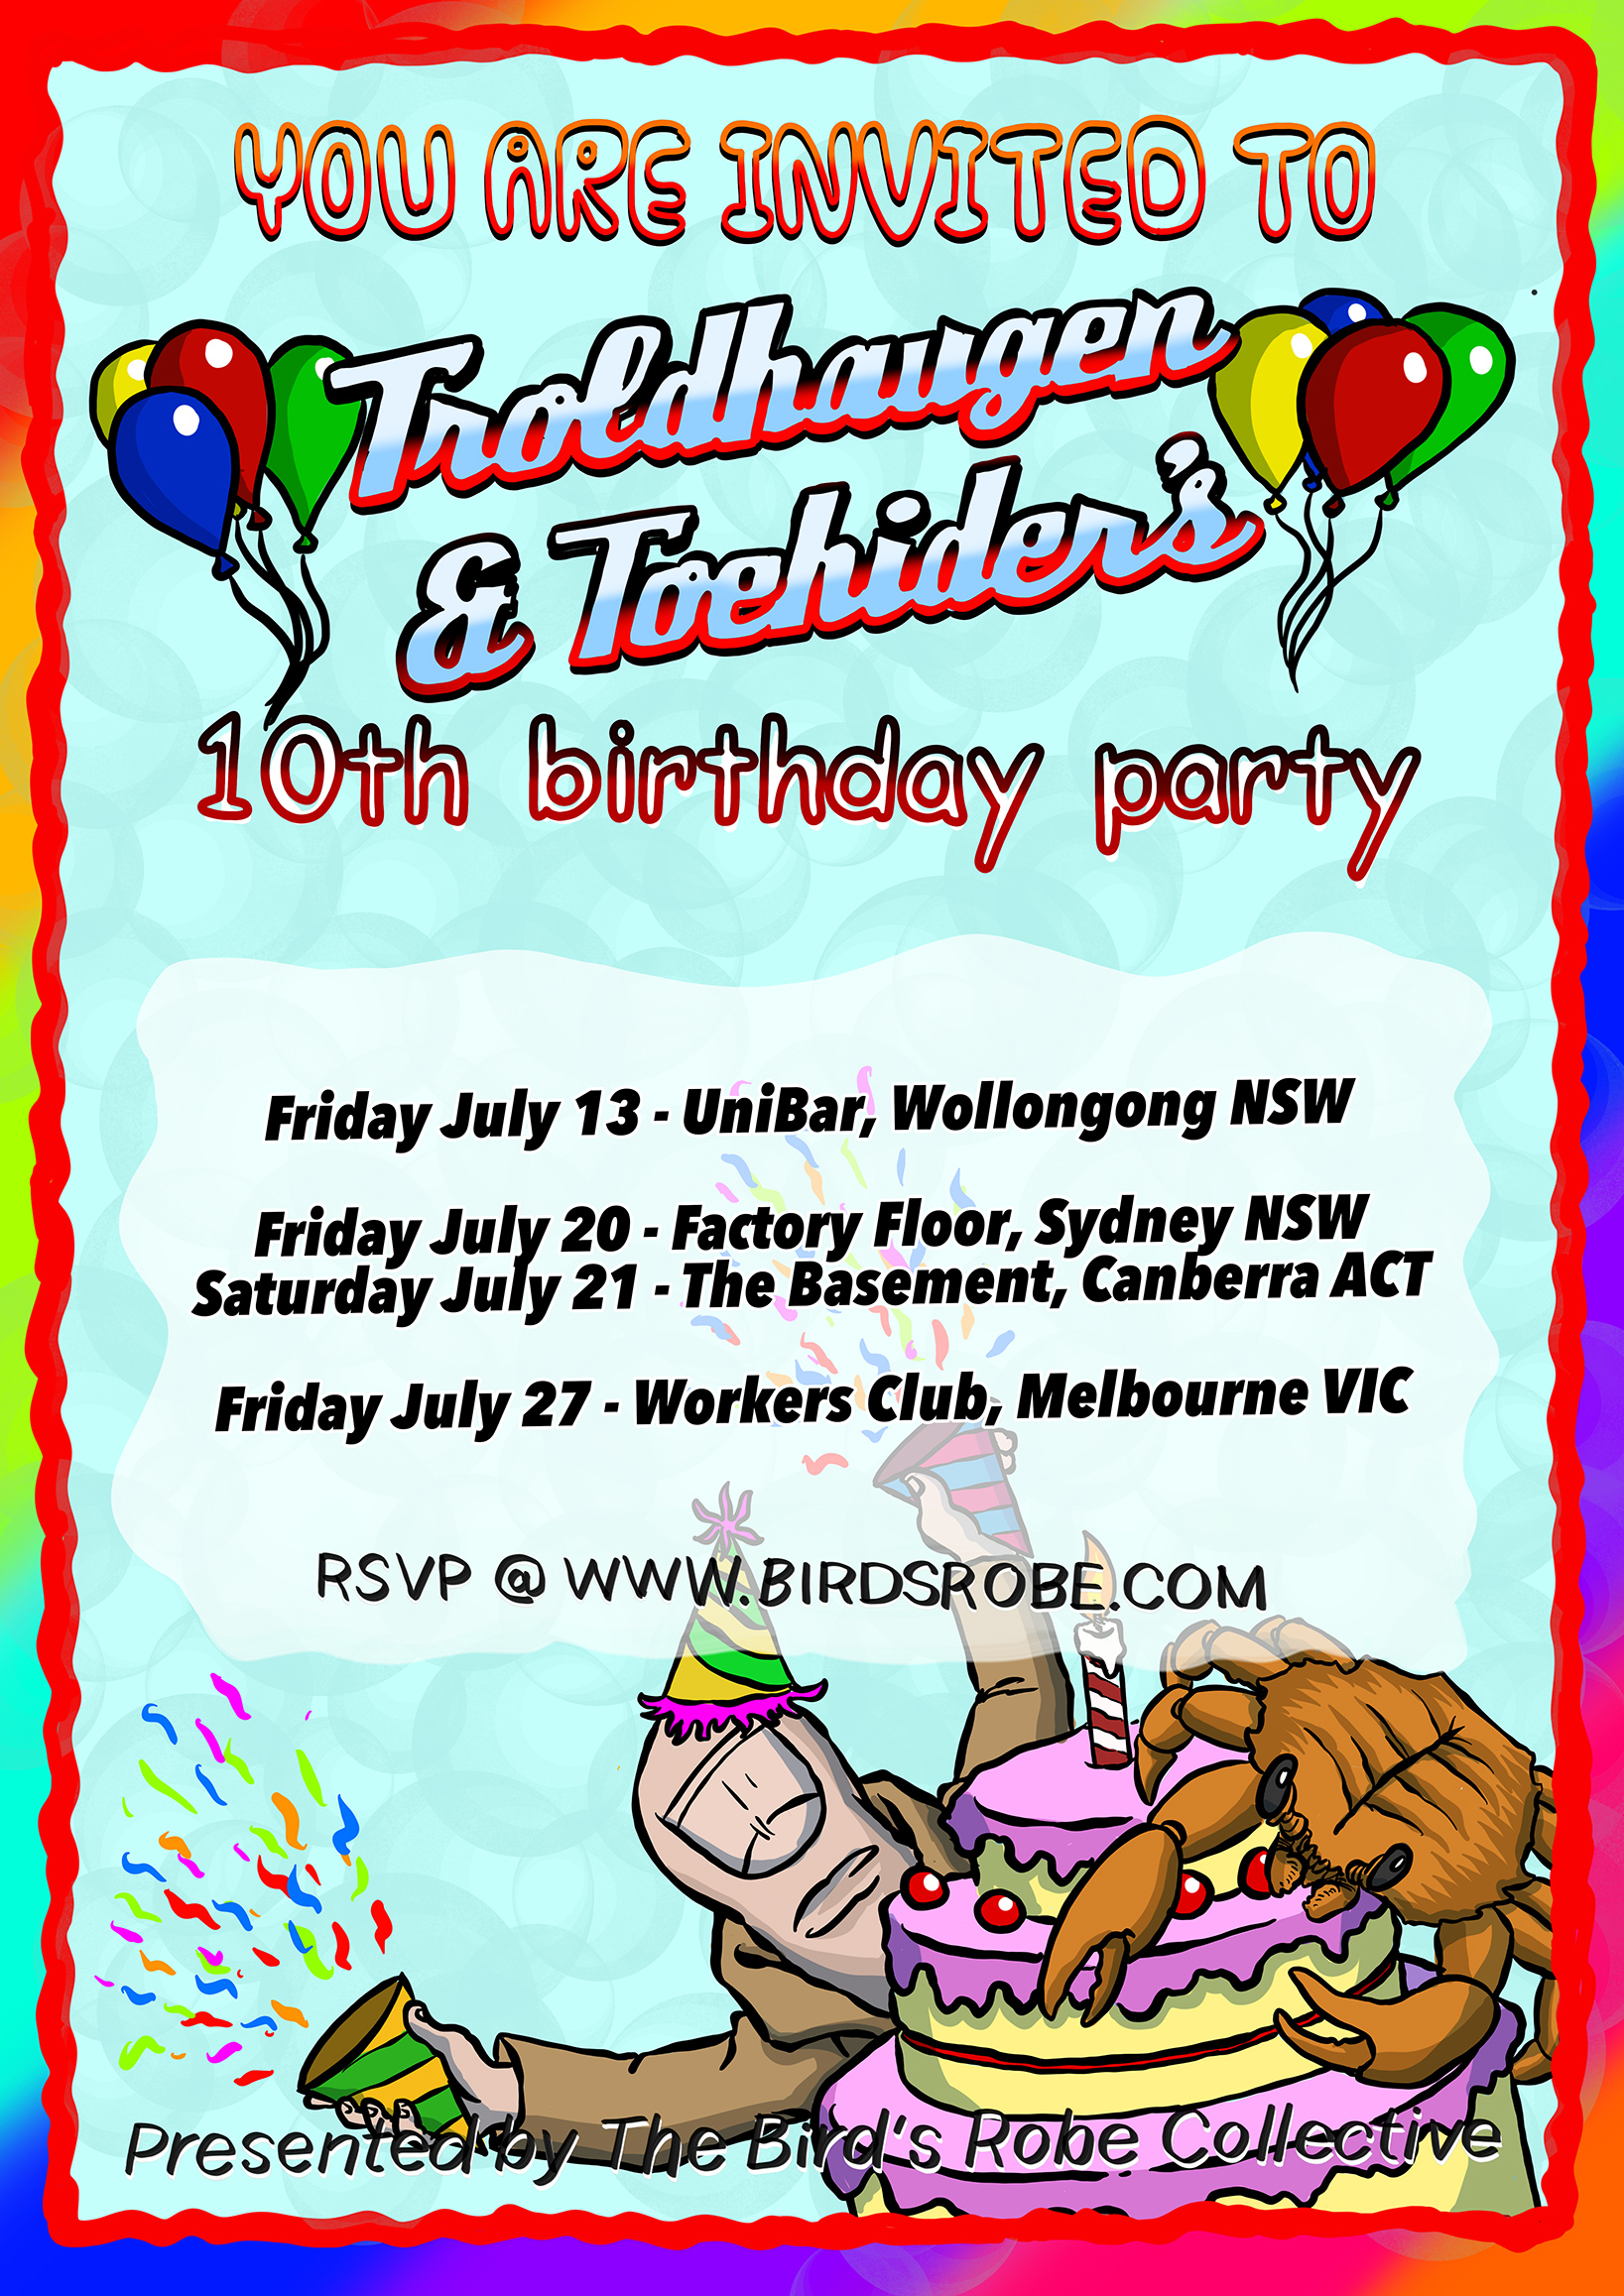 Toehider & Troldhaugen announce 10th anniversary co-headlining tour for July